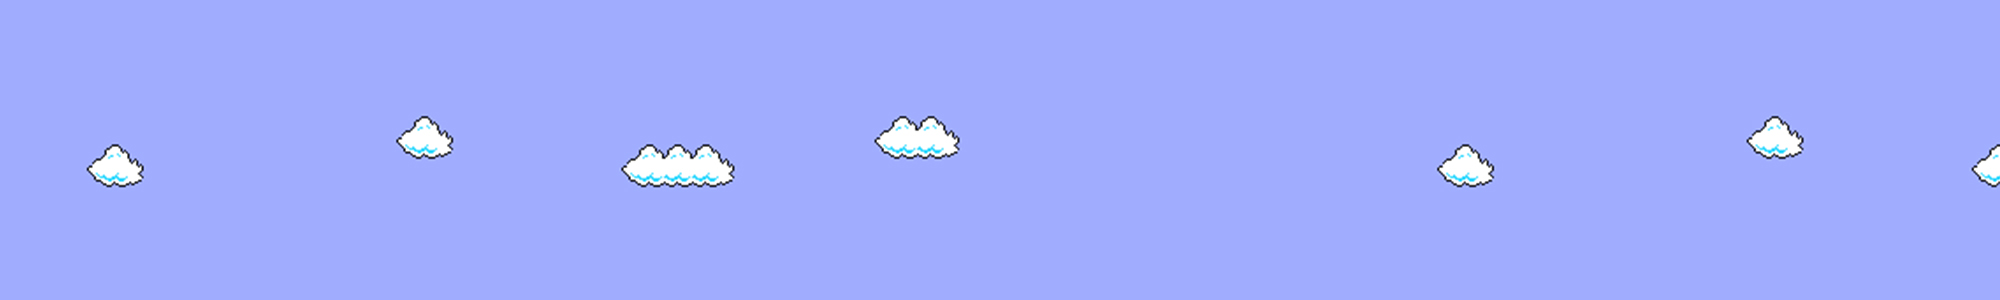 CI_NSwitchDS_SuperMarioBros35_StageBackground_Level2_Clouds_Desktop.jpg